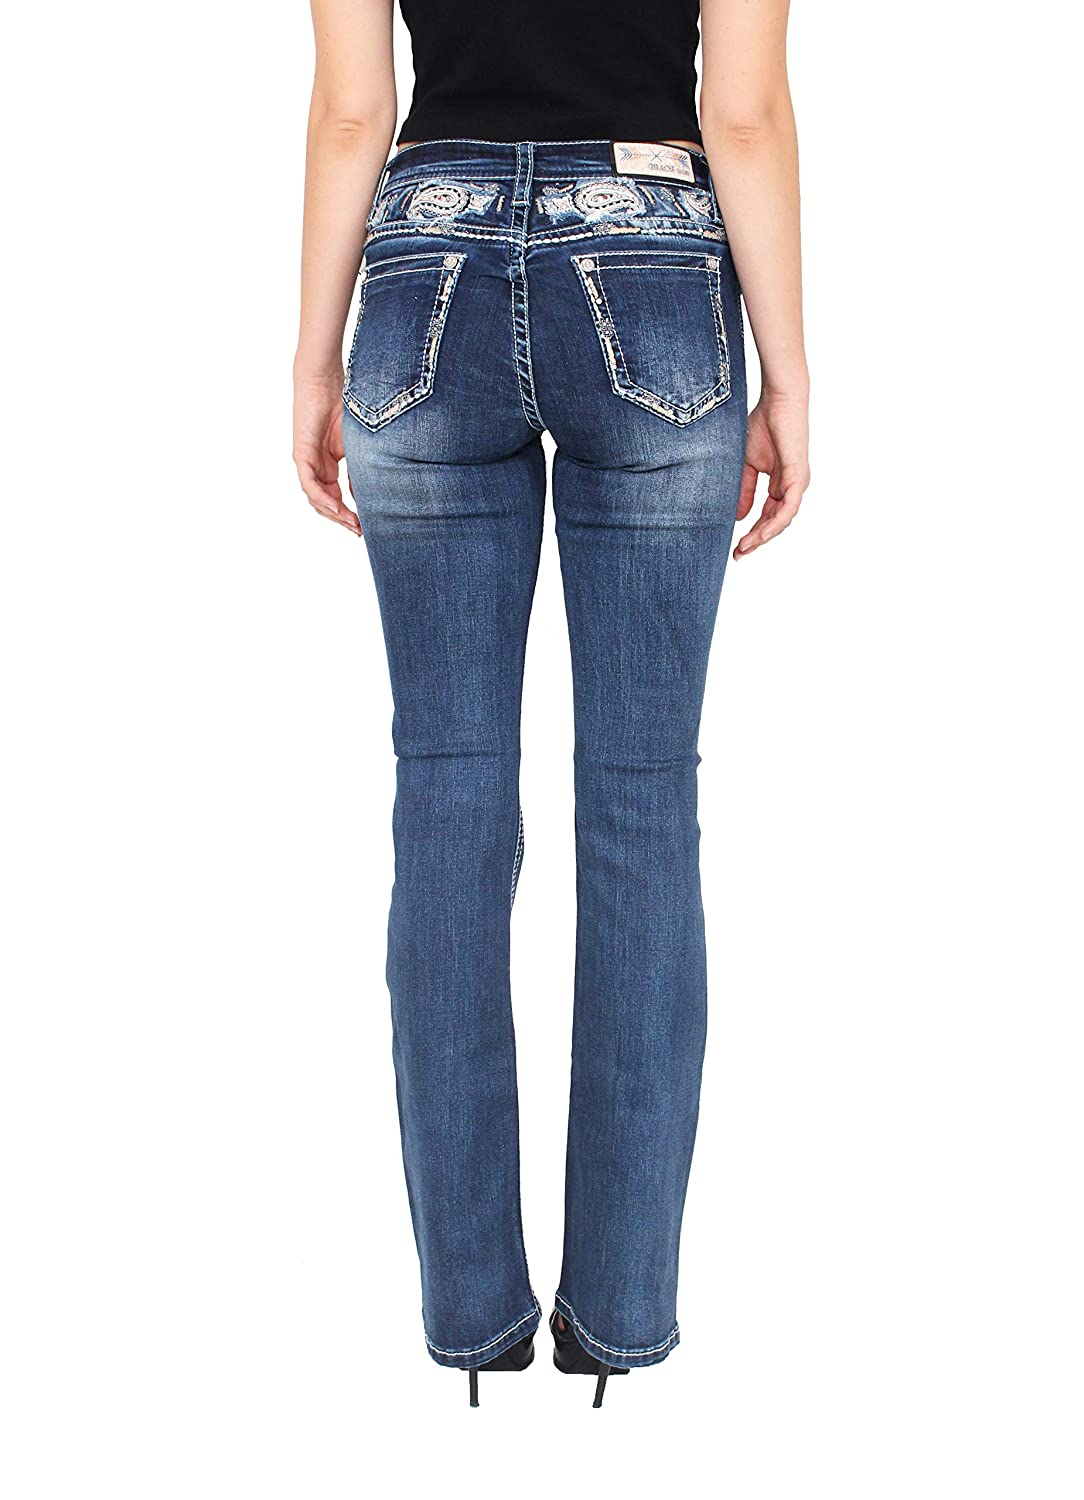 Grace in LA Women Easy Fit Floral Embellished Faded Bootcut Jeans with Paisley Yoke